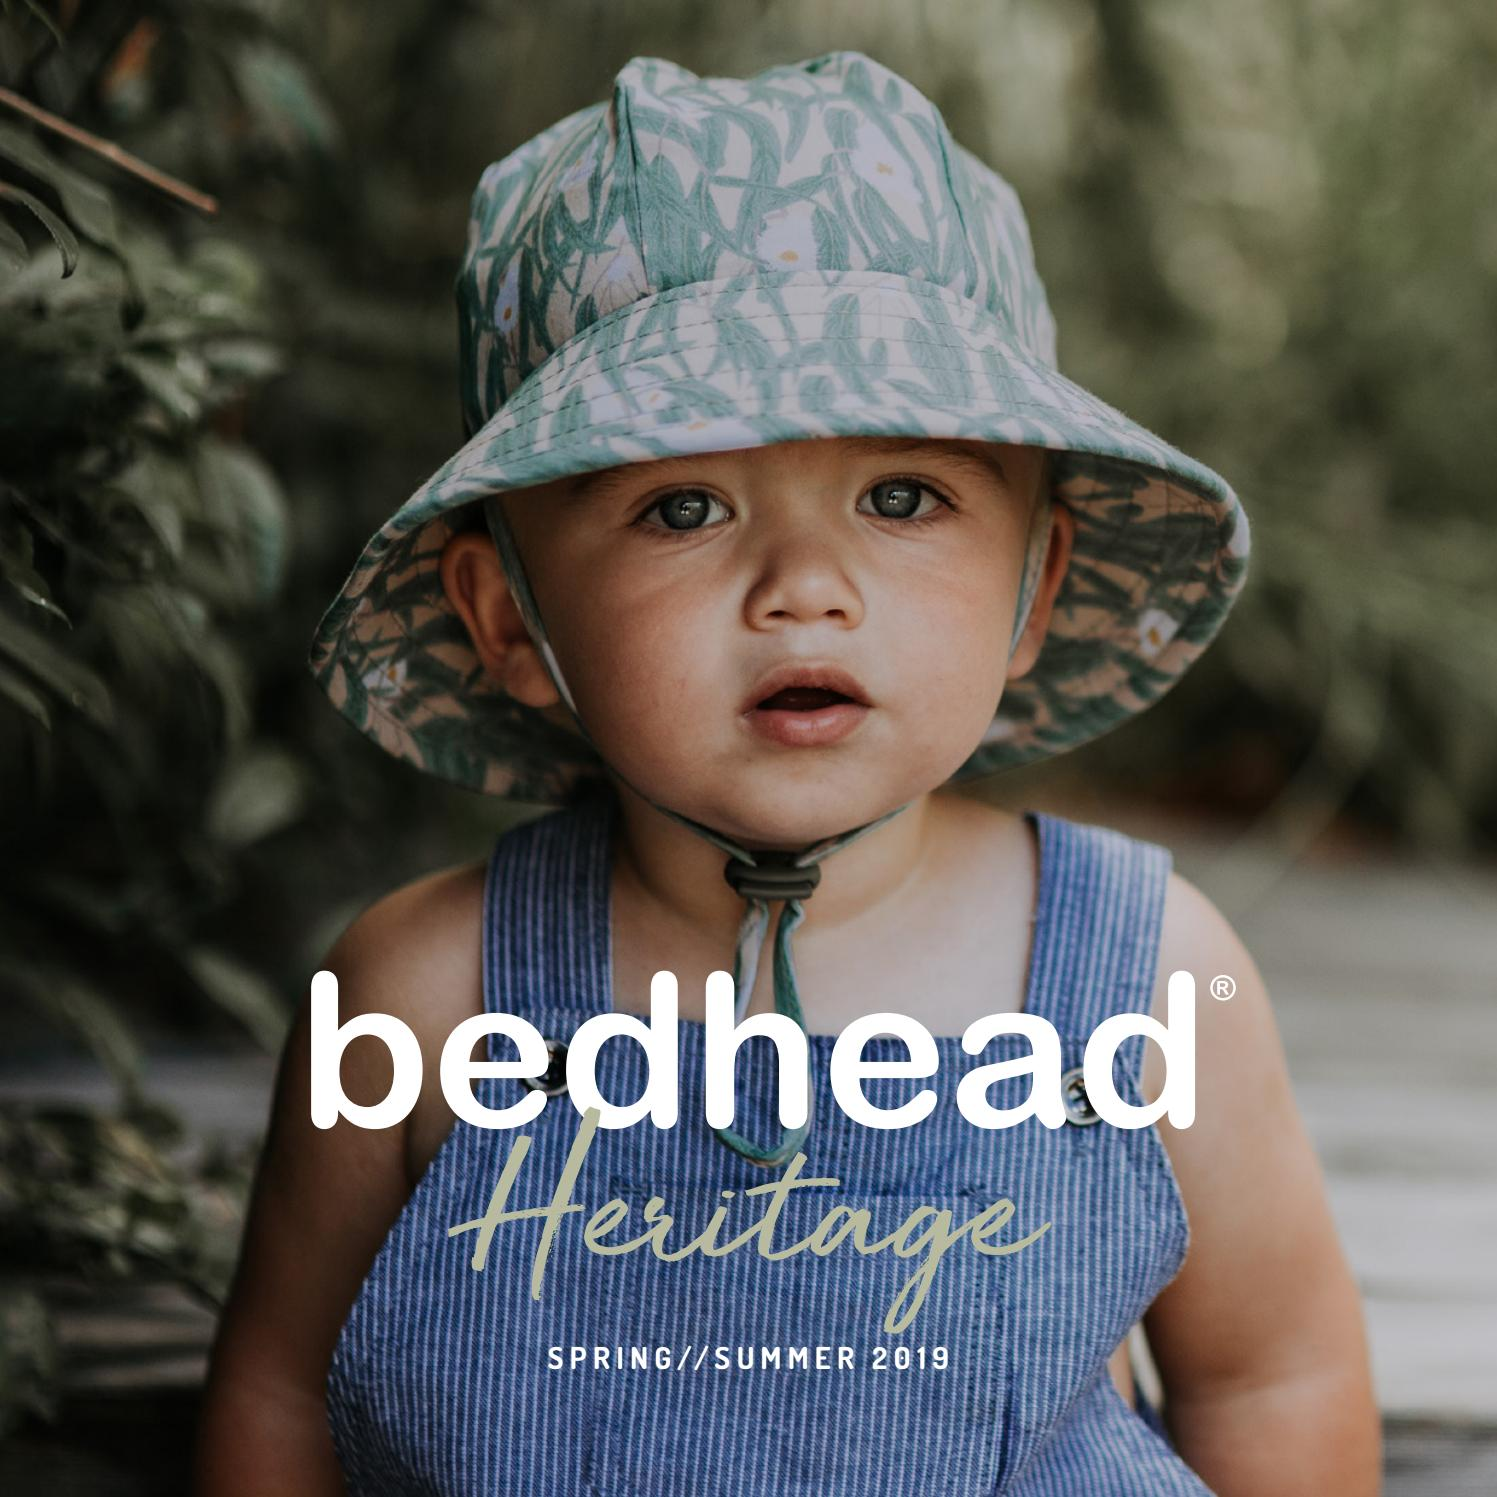 Bedhead Hats - Heritage Collection - Spring 2019 by Bedhead